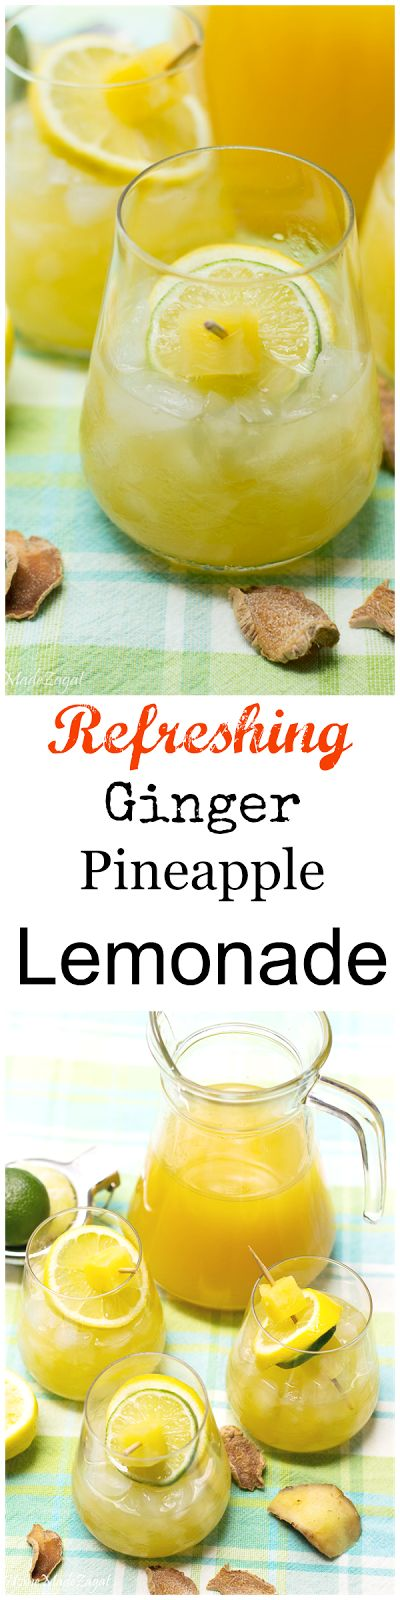 A refreshing lemonade made of ginger syrup, lime, pineapple and lemon juice. A mix of sweet and sour and a little tangy.